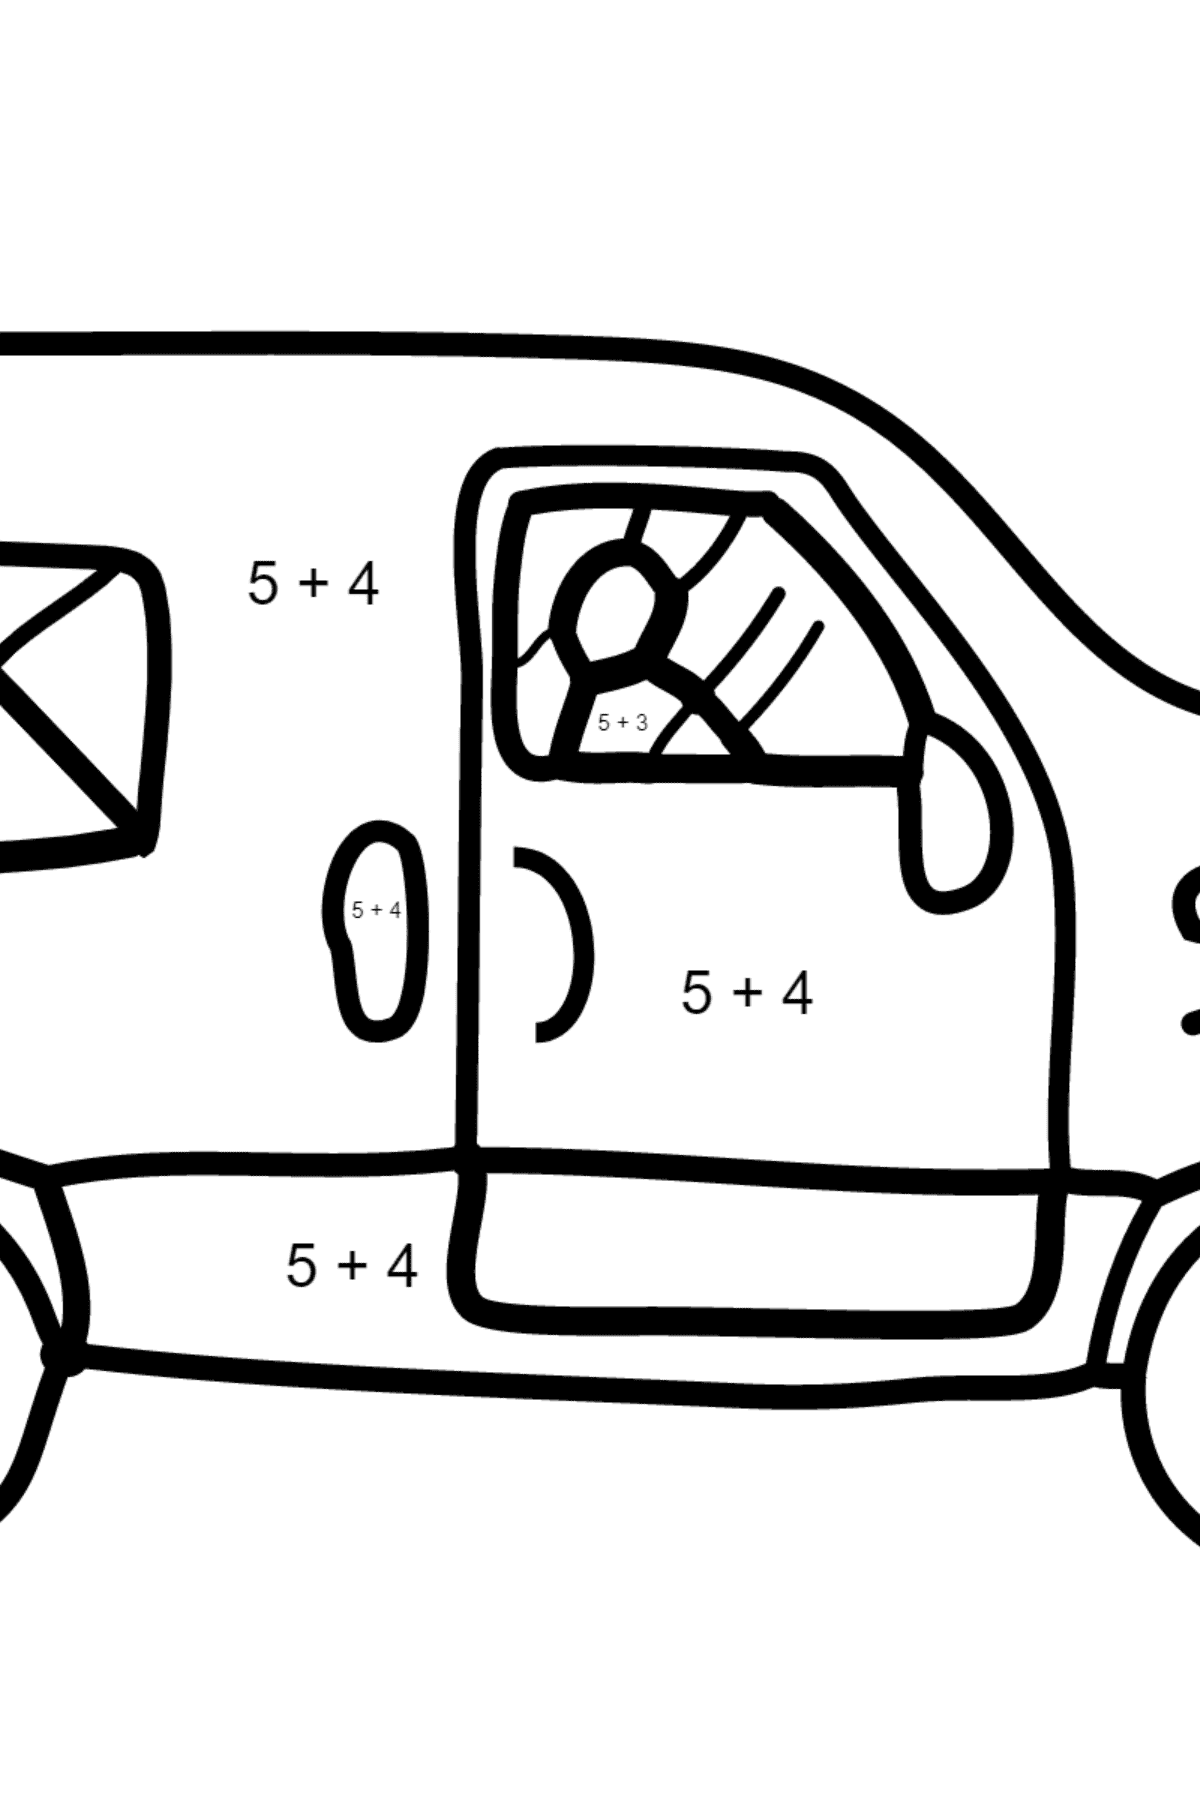 Coloring Page - A Car is Carrying Mail - Math Coloring - Addition for Children